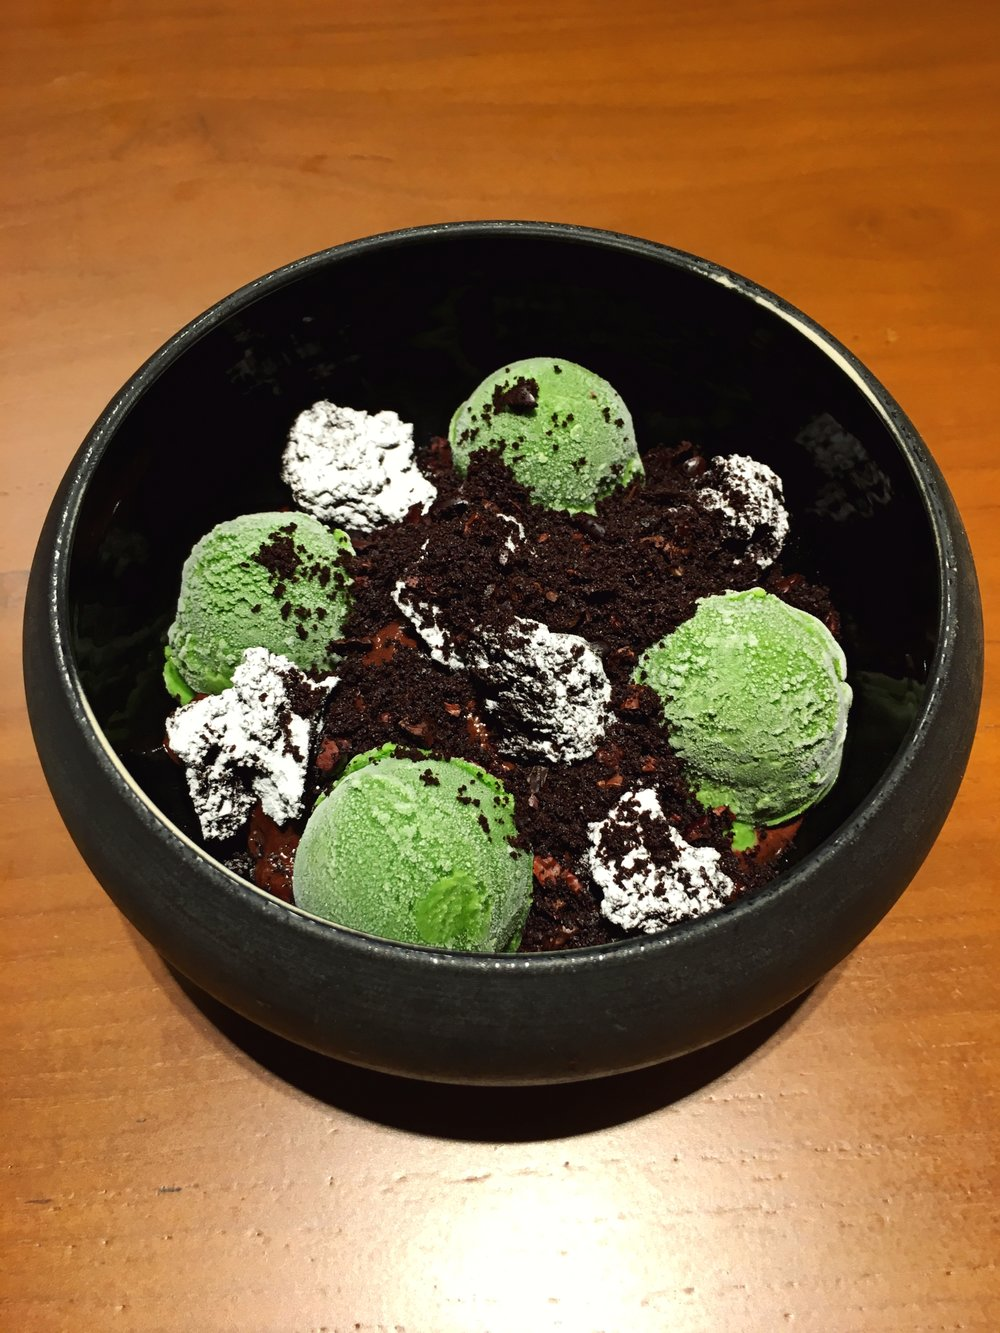 Cocoa 99 - ▽ Warm organic chocolate▽ Mint ice cream ▽ Browny Croutons